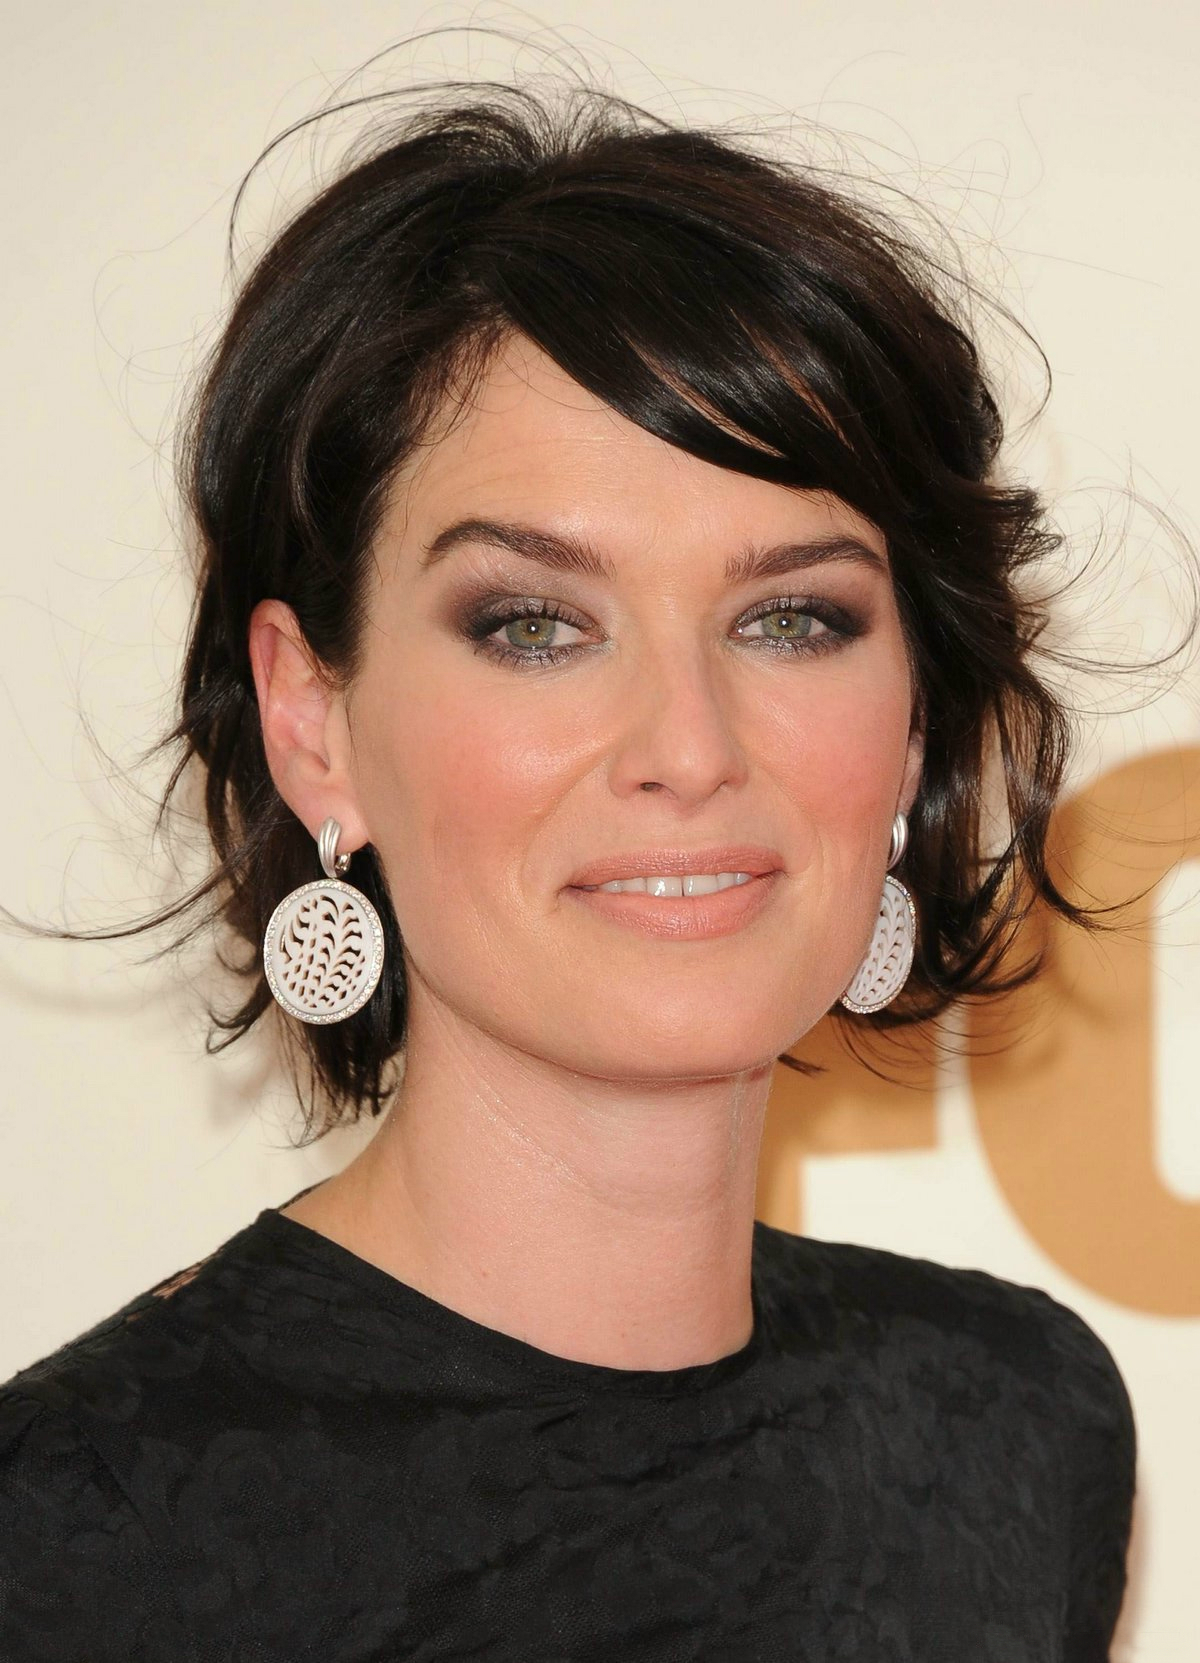 s style haircuts 2011 primetime emmy awards lena headey photo 28454229 1663